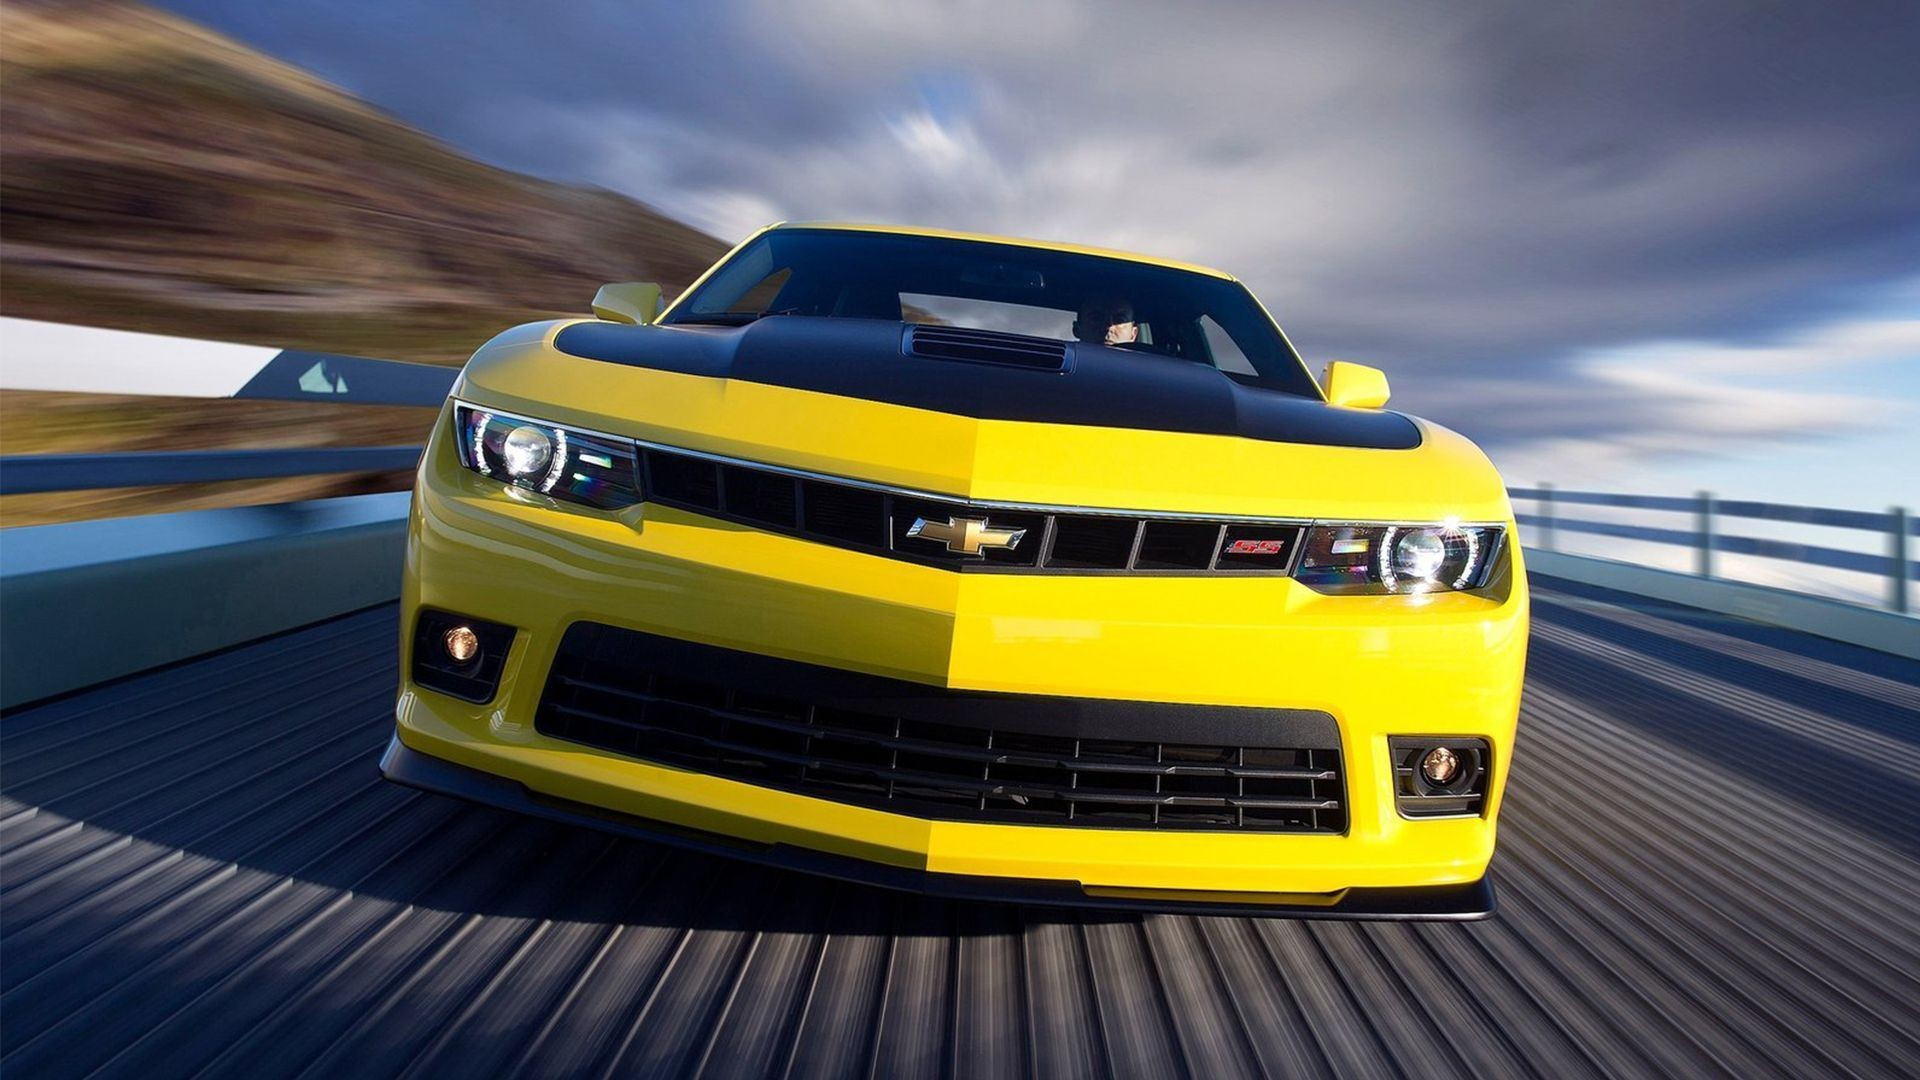 Chevrolet, Chevrolet Camaro, cars :: Wallpapers